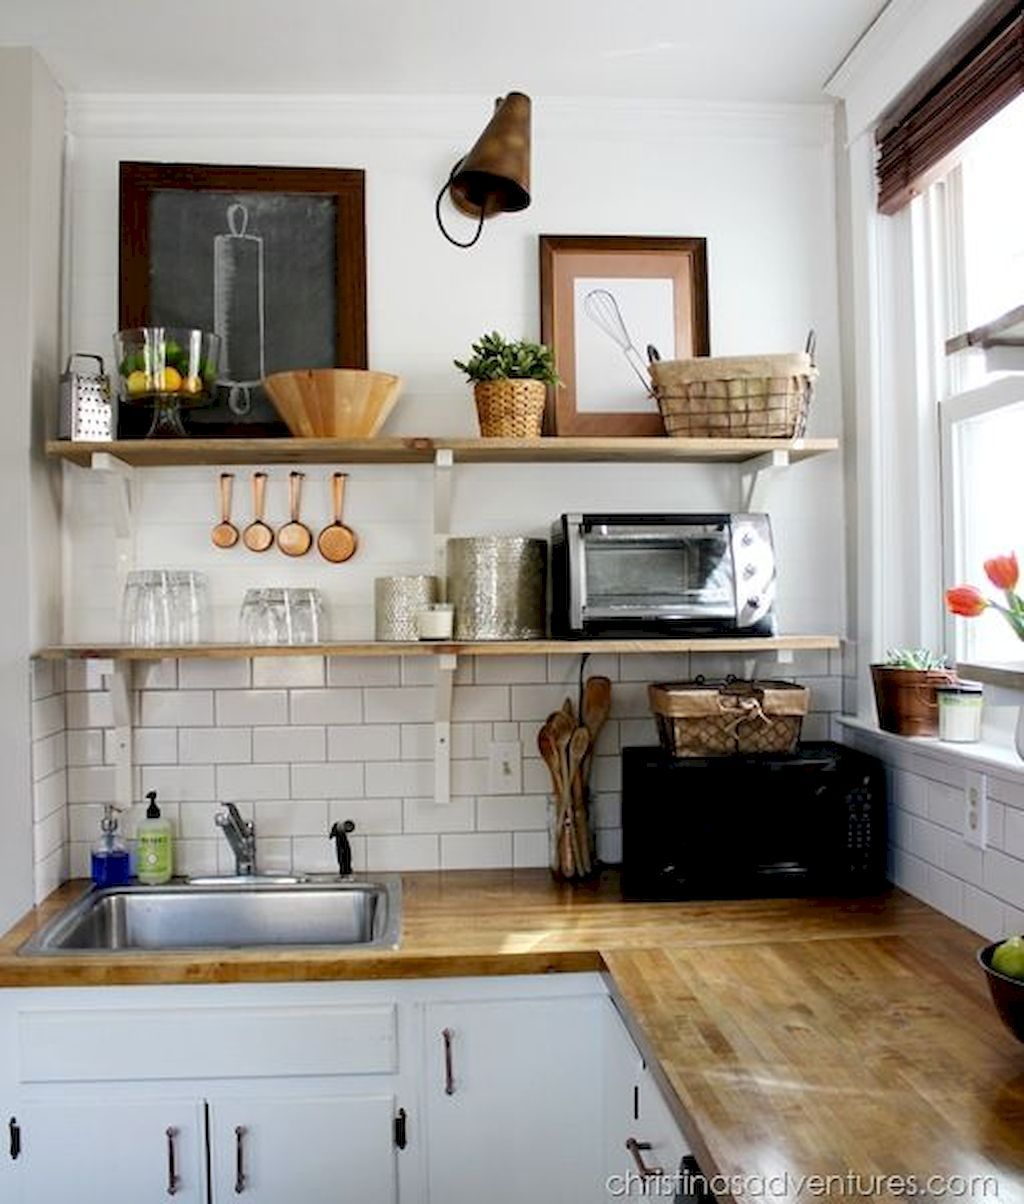 Small Kitchen Plan And Design For Small Room Home To Z Kitchen Remodel Small Diy Kitchen Remodel Kitchen Remodel Cost